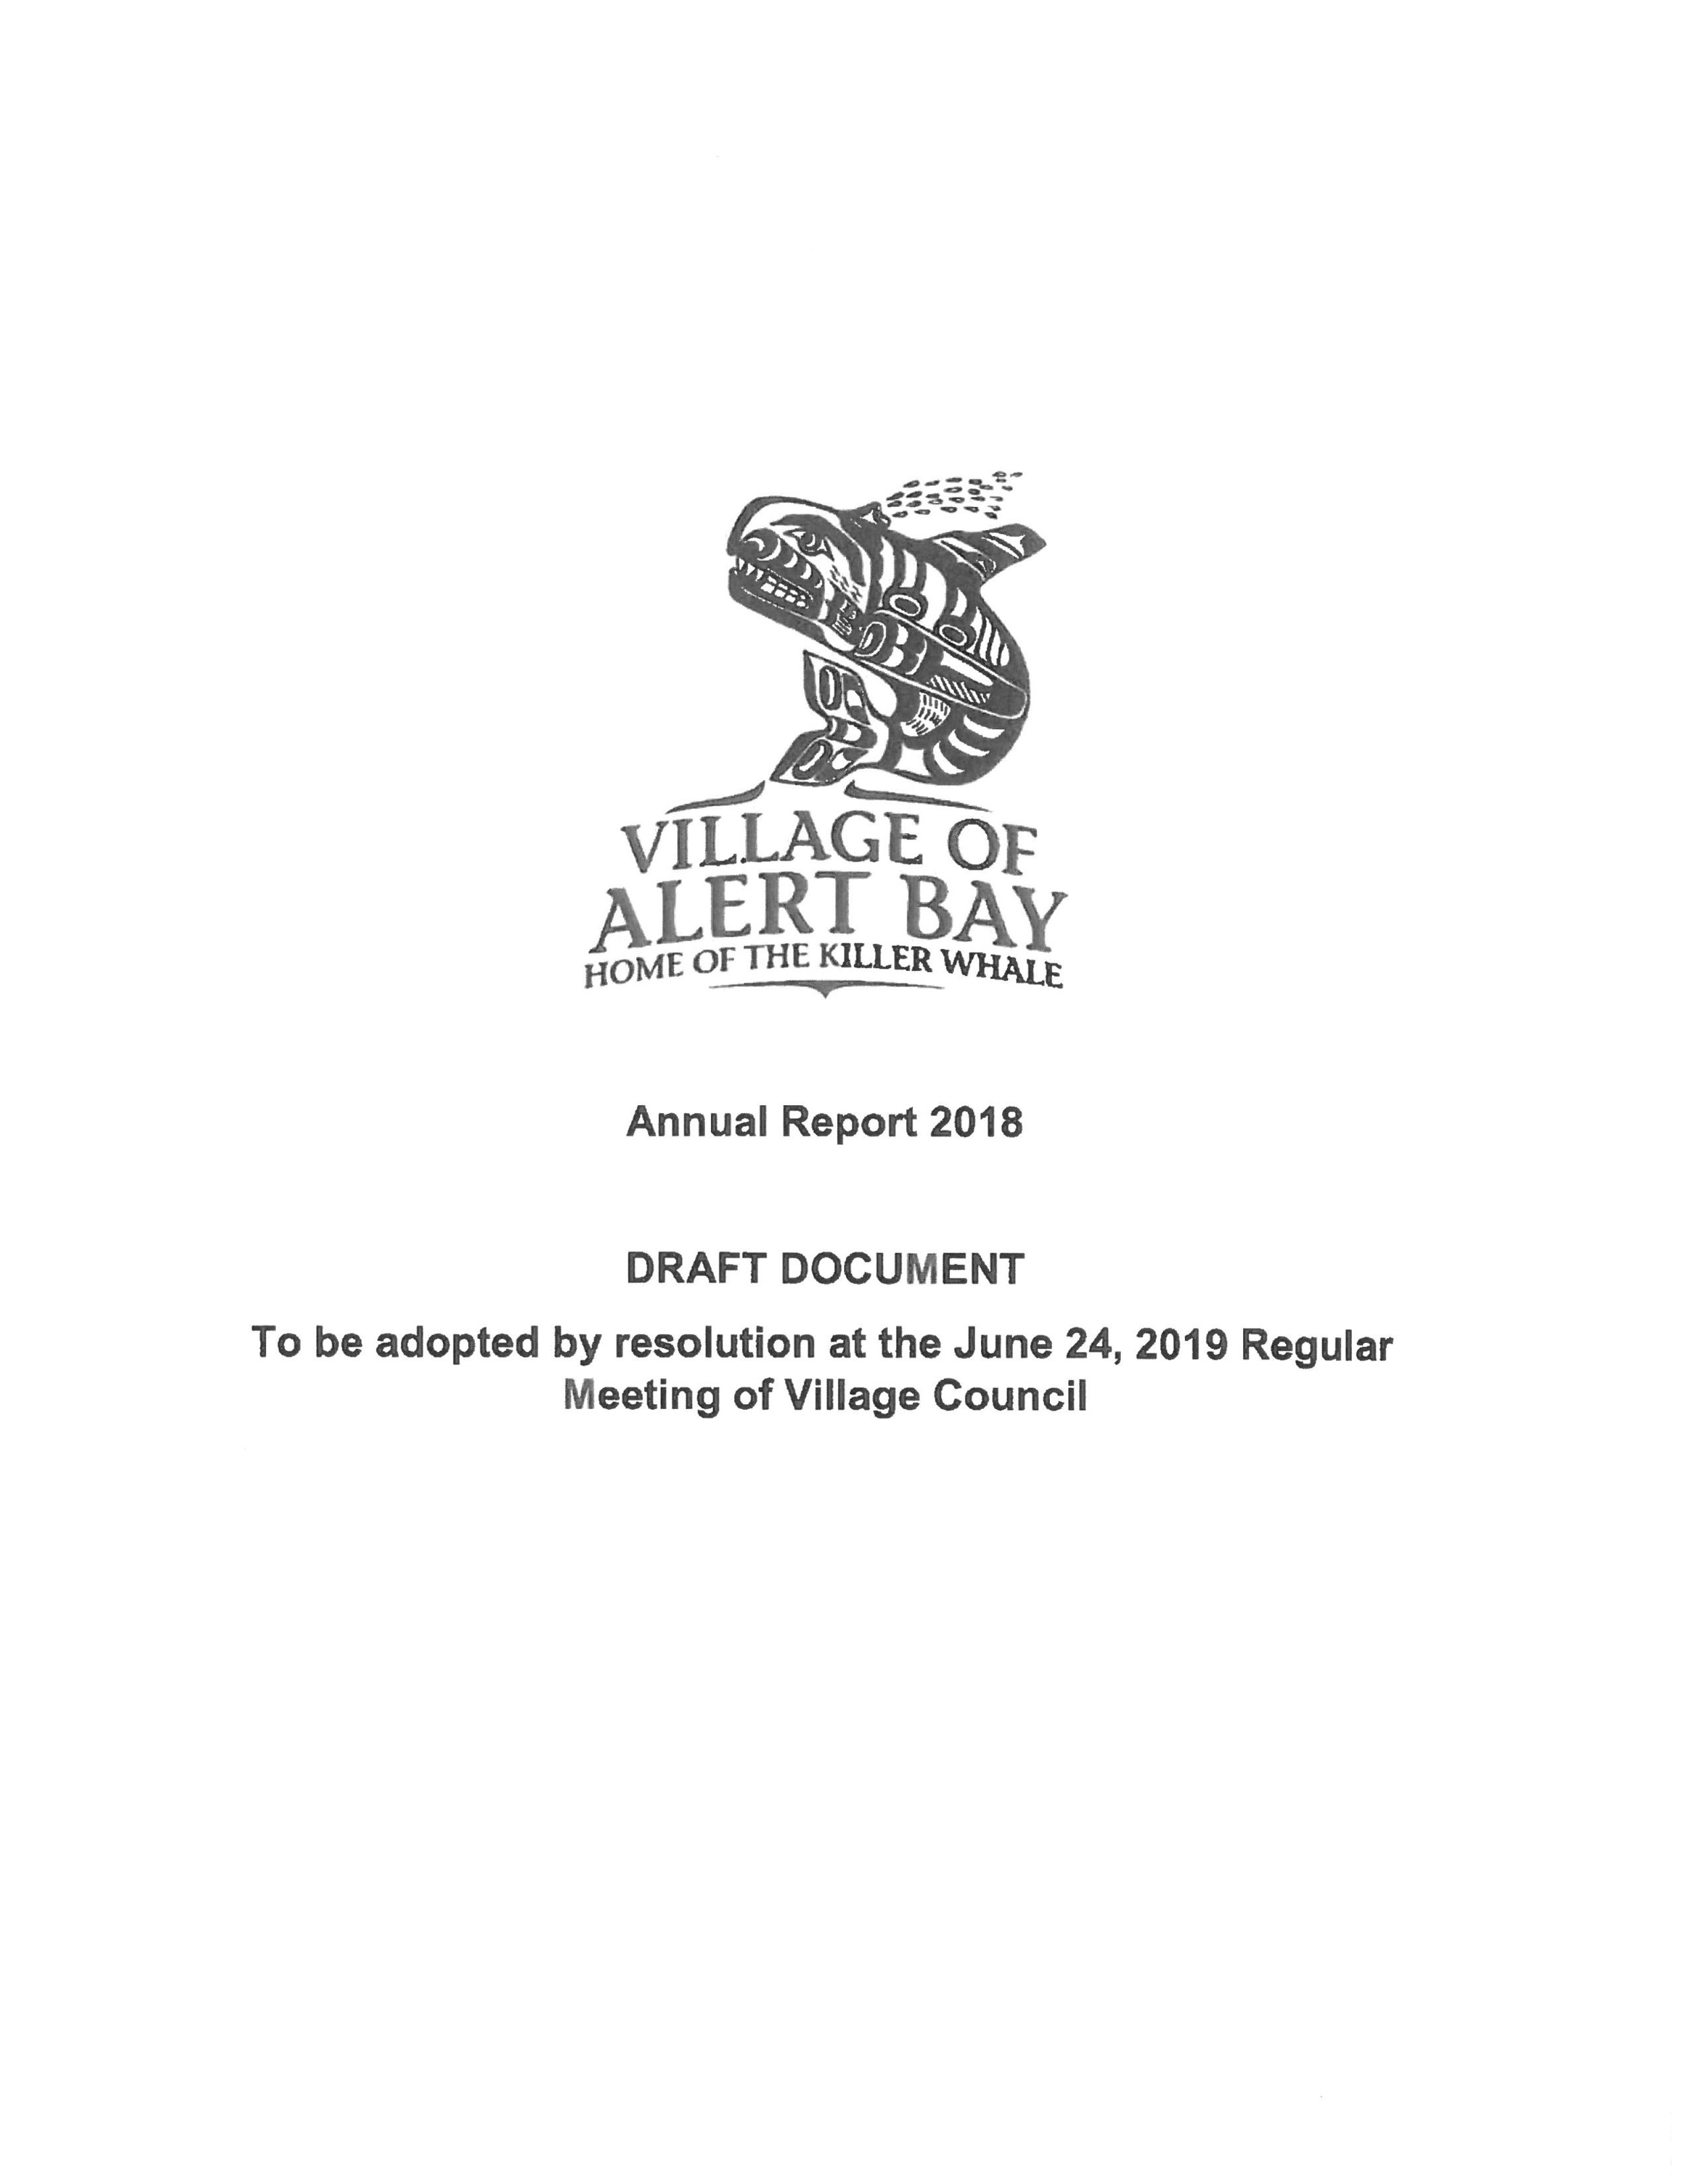 click link above to view full draft report